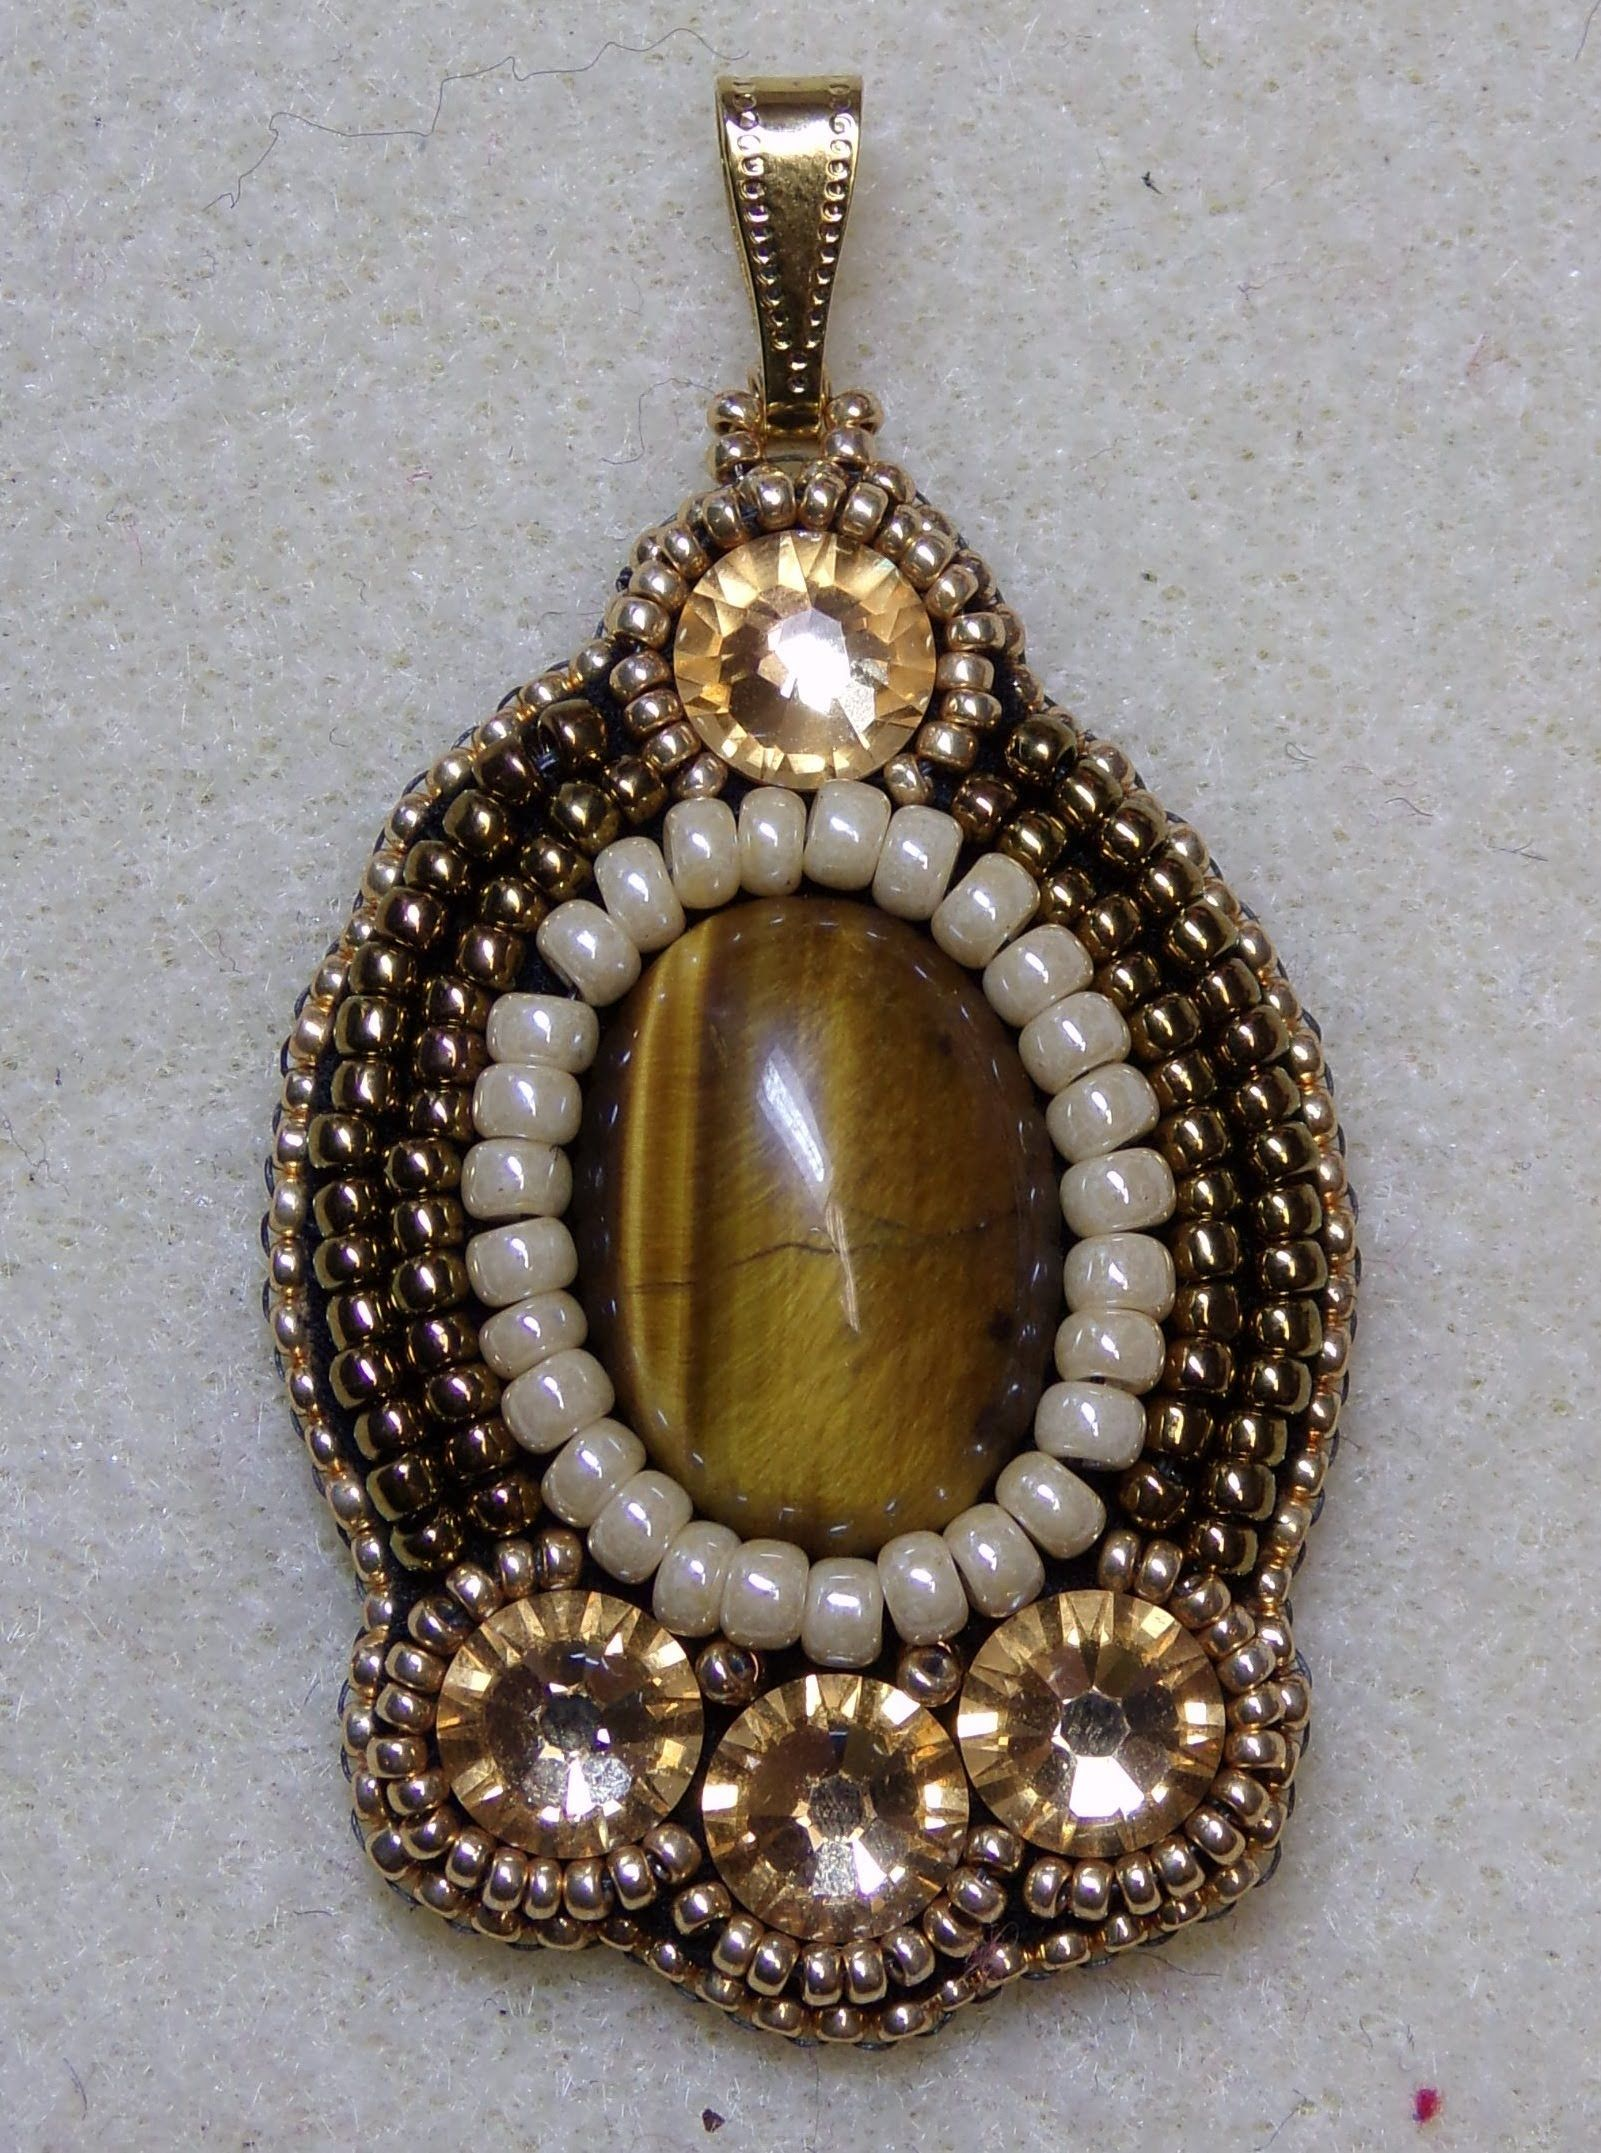 Set in stone pendant bead embroidery simpler one to start out with